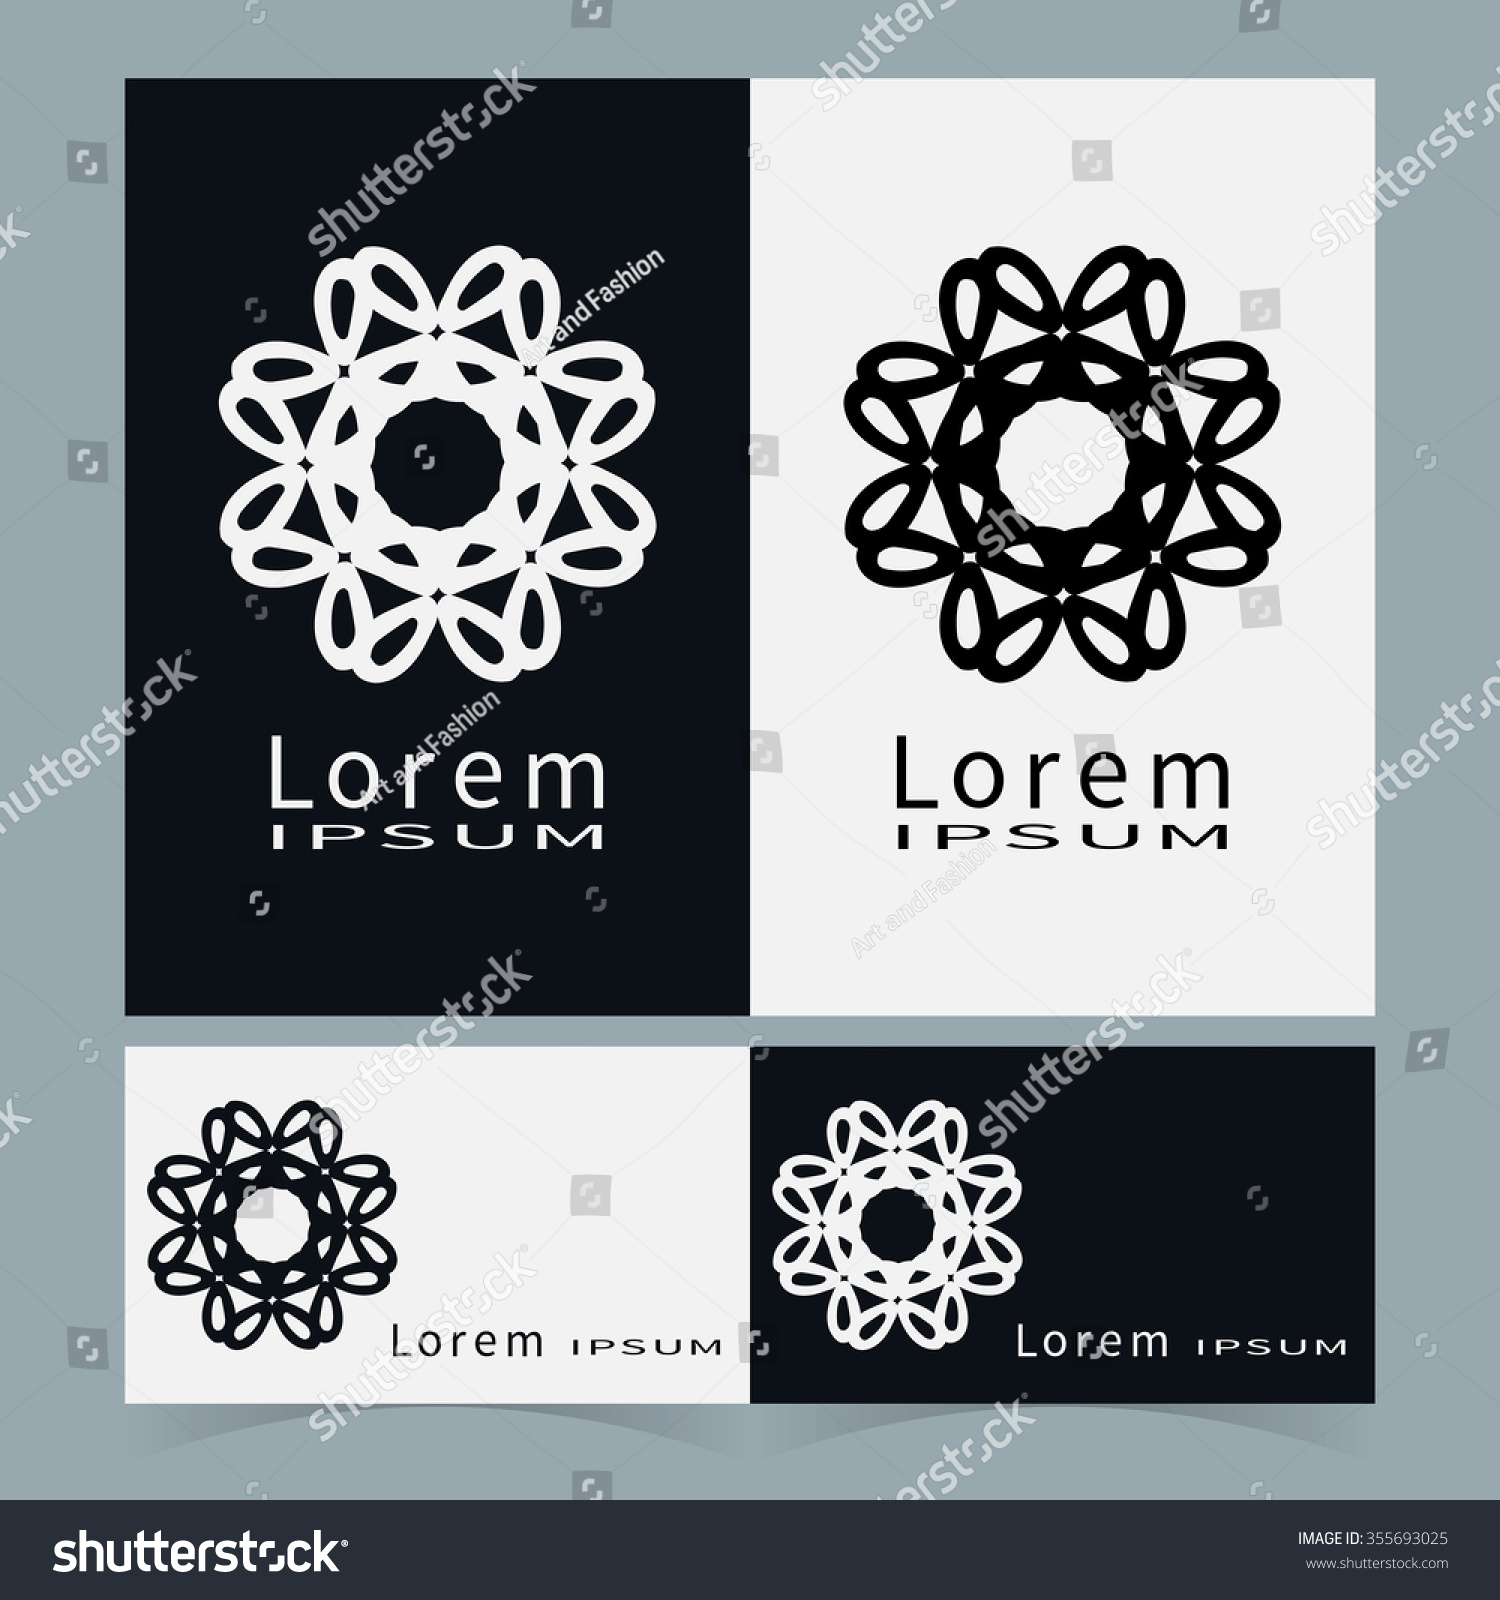 black white floral geometric element logo stock vector